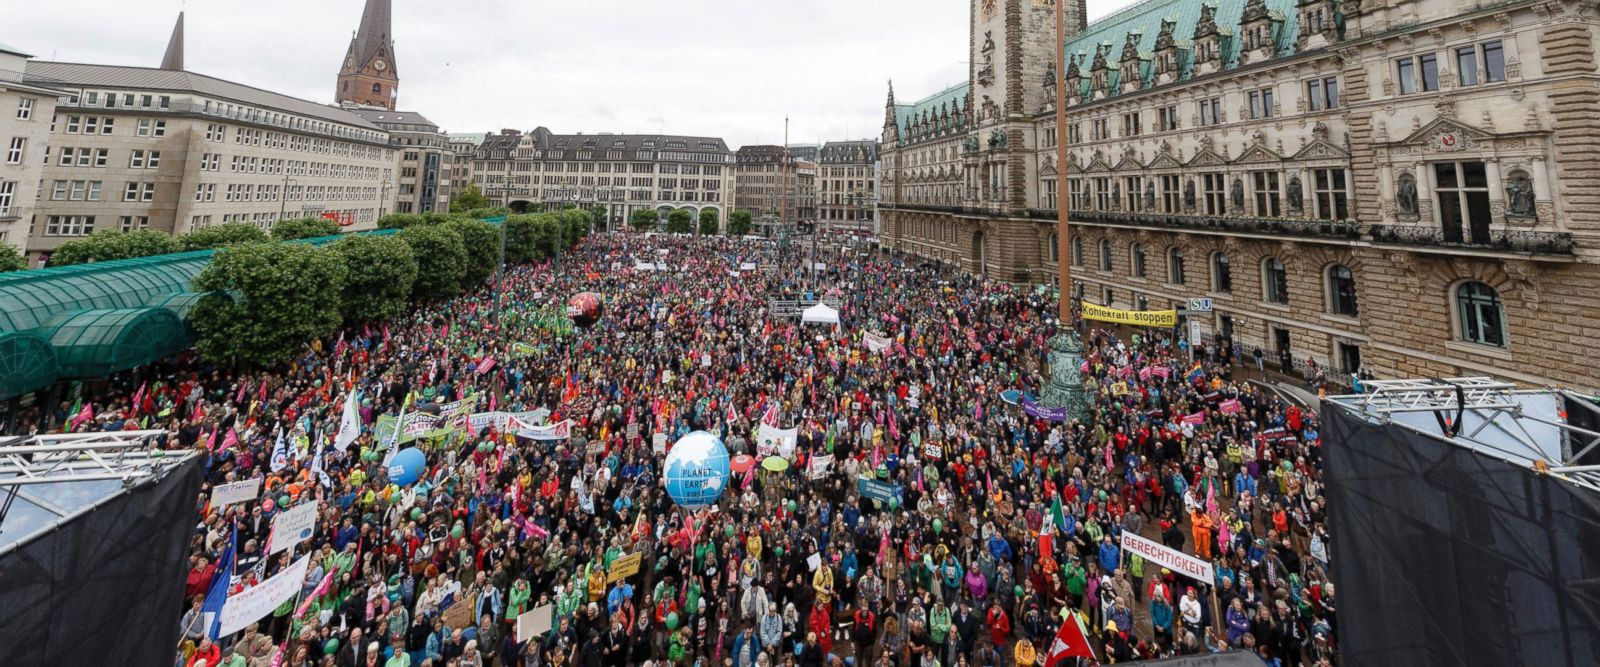 Protesters Outside G20 Venue in Hamburg Germany.